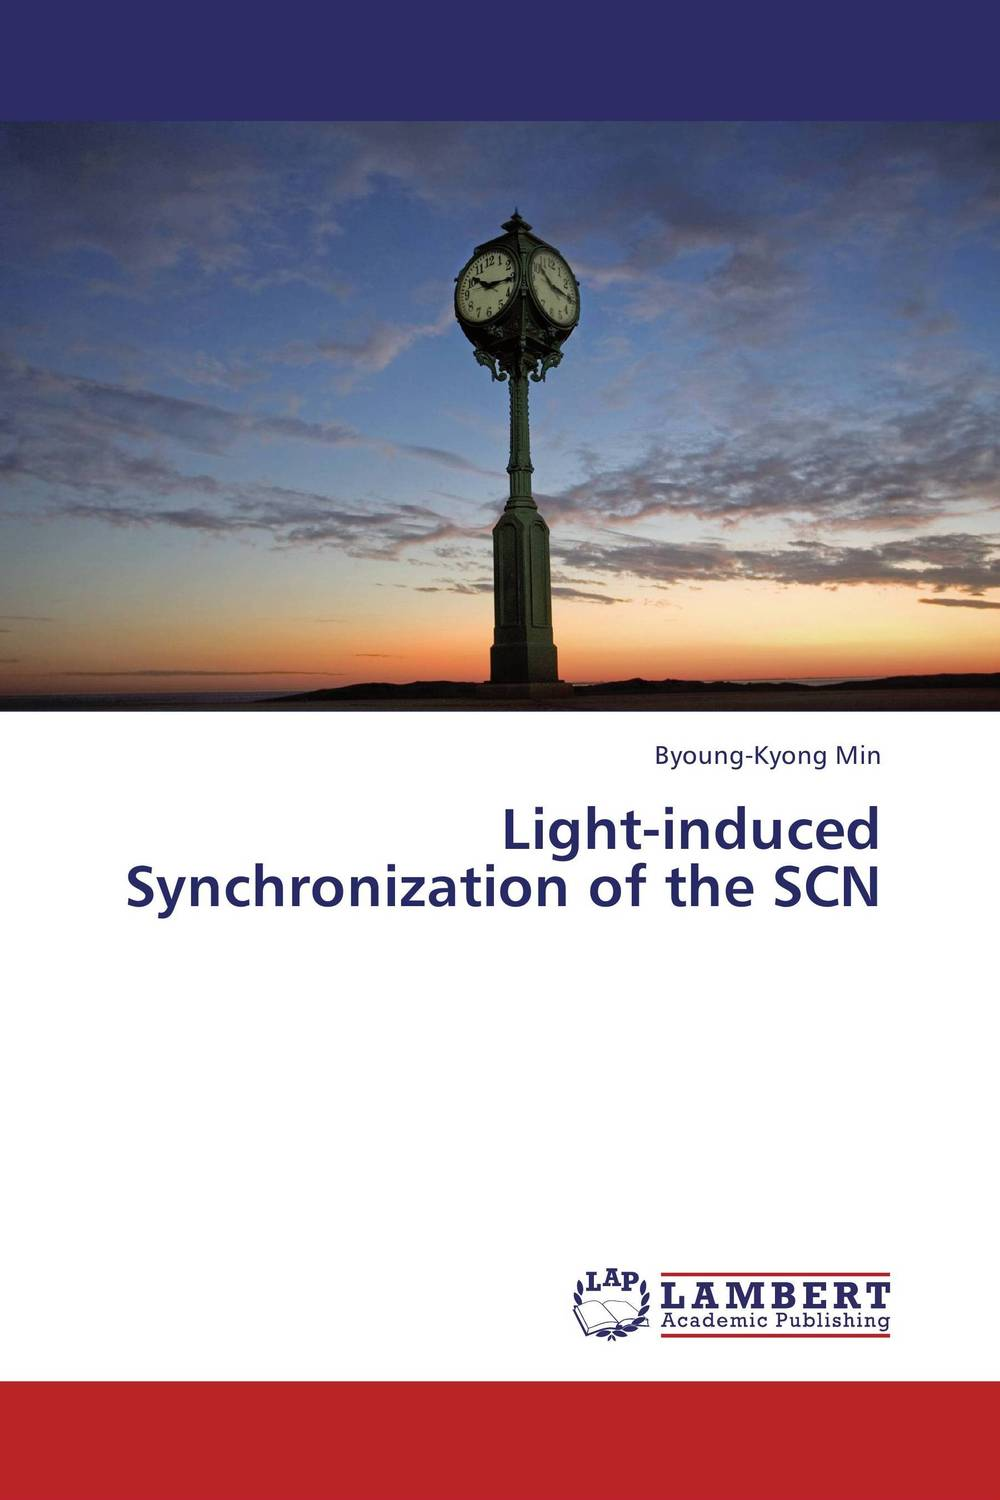 Light-induced Synchronization of the SCN neuroethological studies on the scorpion's circadian activities